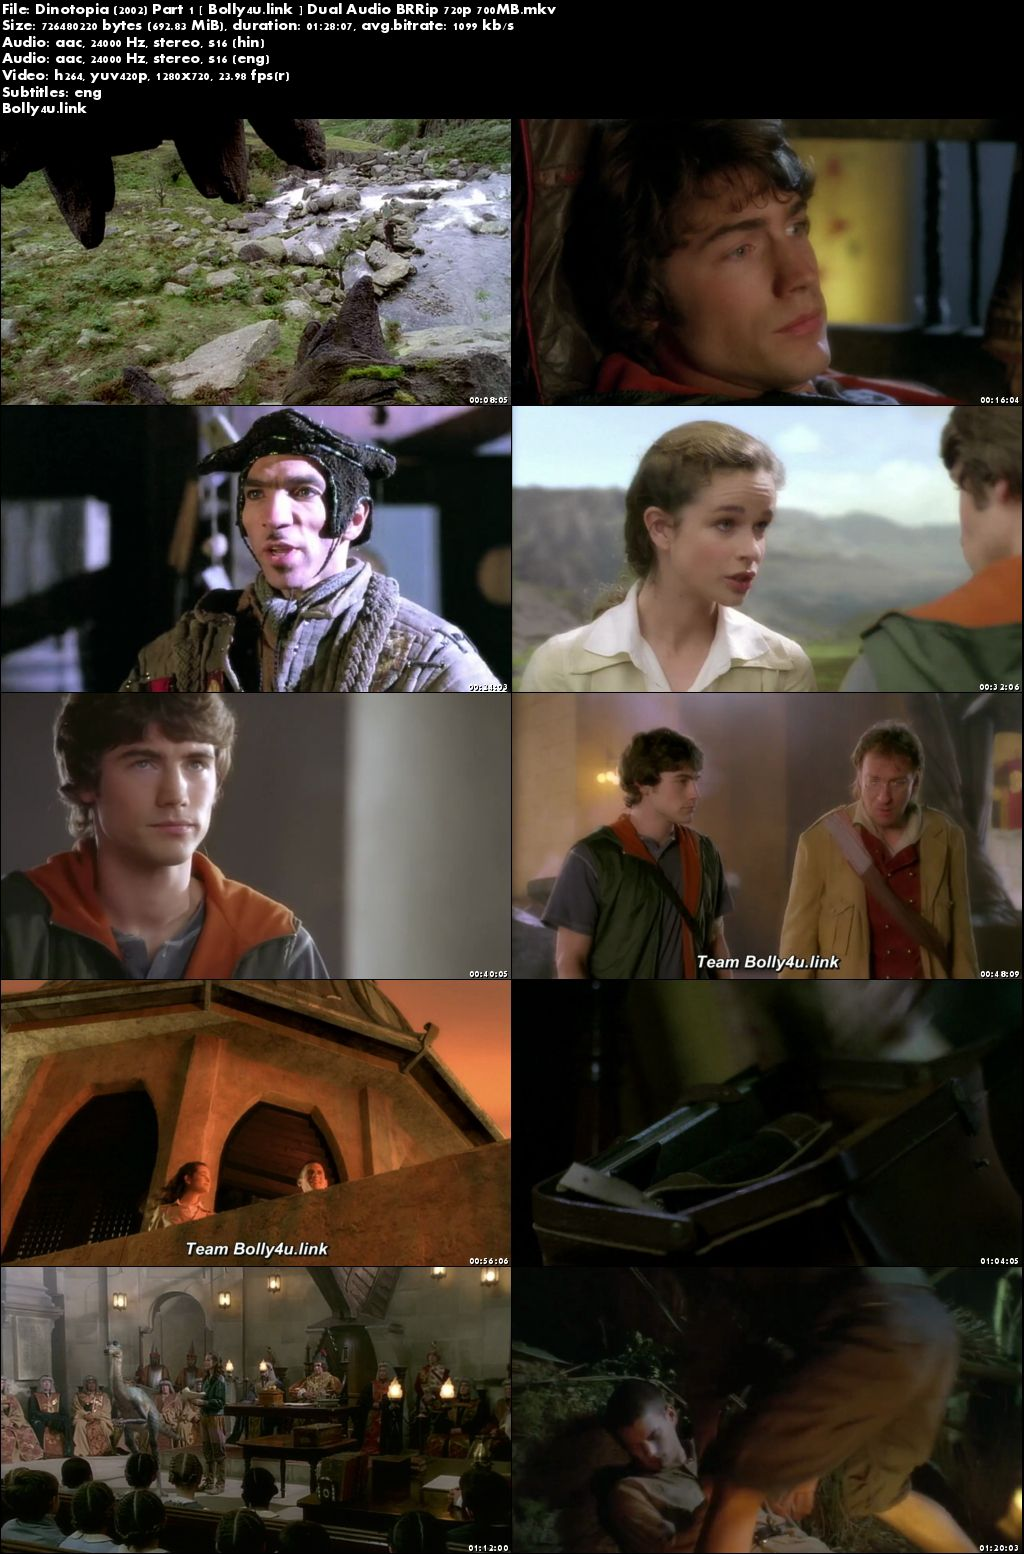 Dinotopia 2002 Part 1 BRRip 300MB Hindi Dual Audio 480p Download